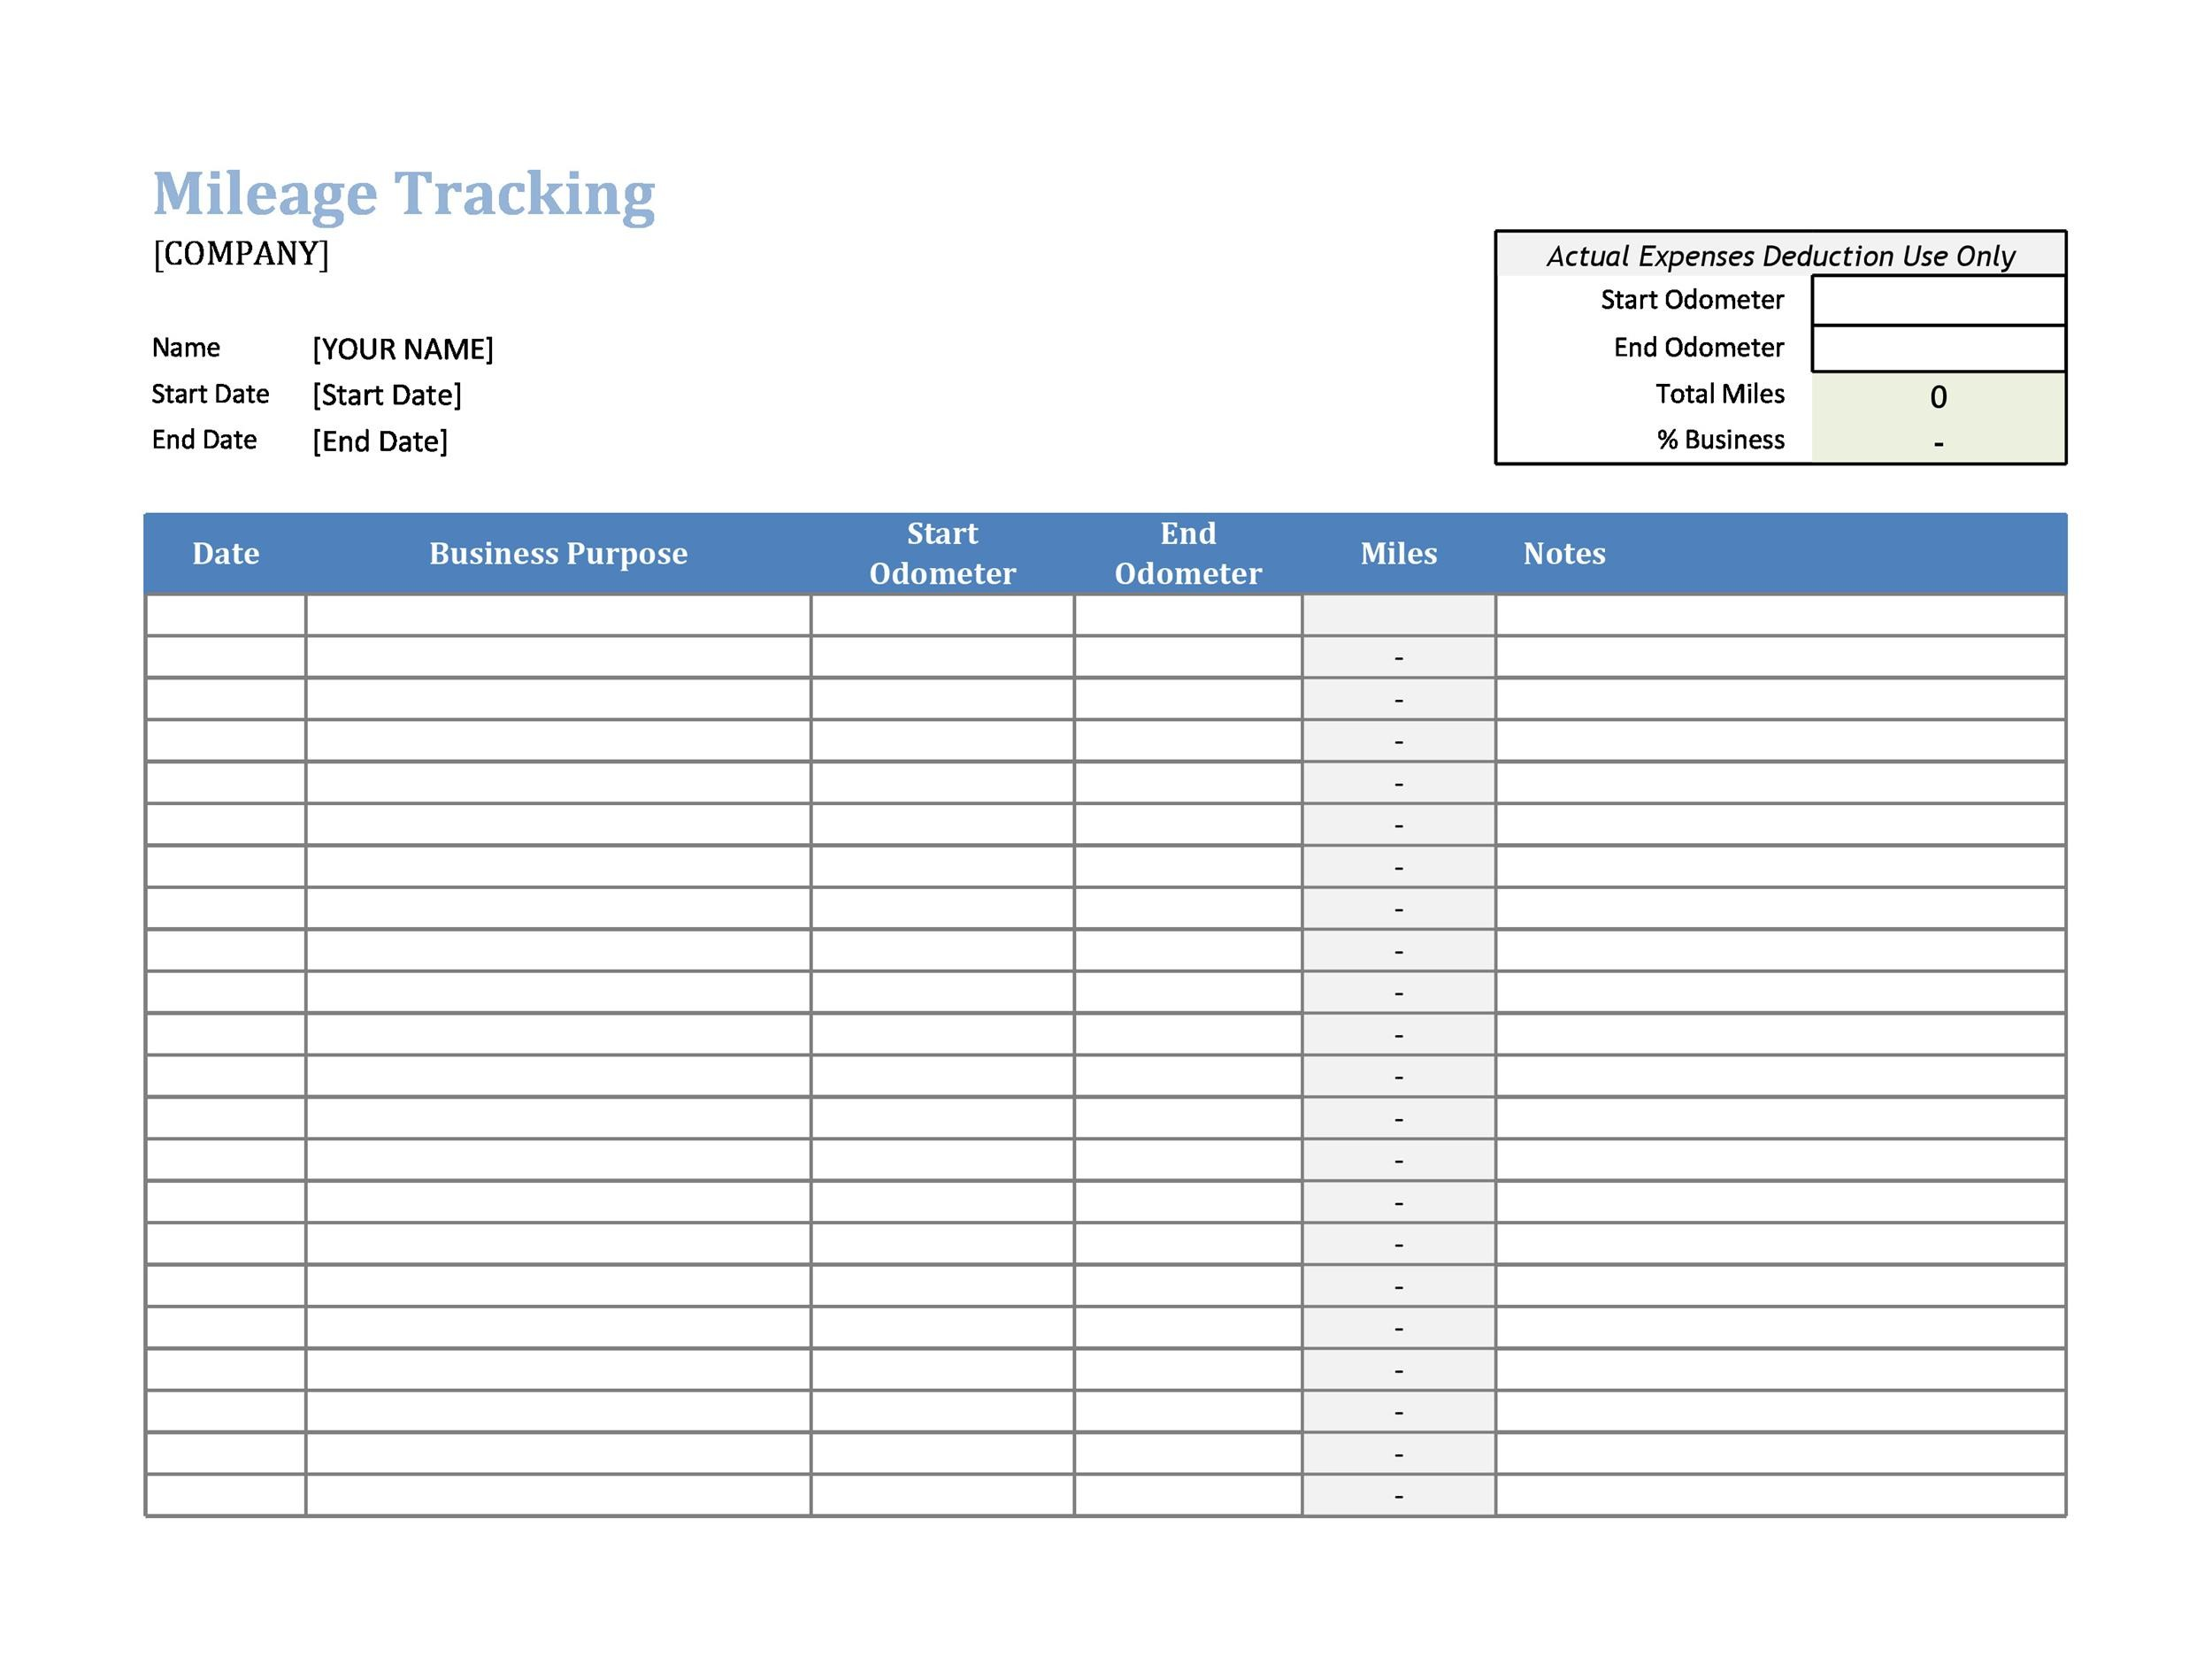 Expense Log Template Best Expense Tracker Ideas On Budget Planner - mileage log template